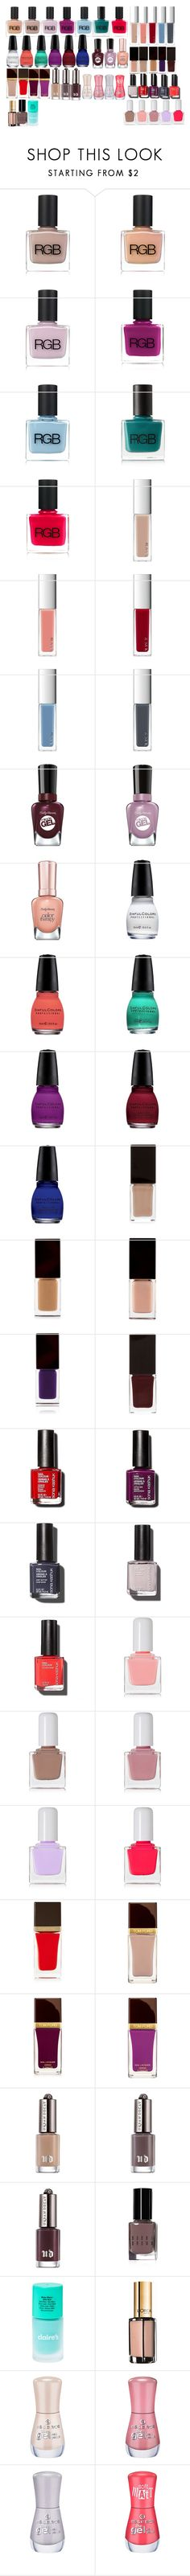 """""""Untitled #1828"""" by azra-99 ❤ liked on Polyvore featuring beauty, RGB Cosmetics, RGB, RMK, Sally Hansen, SinfulColors, Serge Lutens, Sonia Kashuk, tenoverten and Tom Ford"""